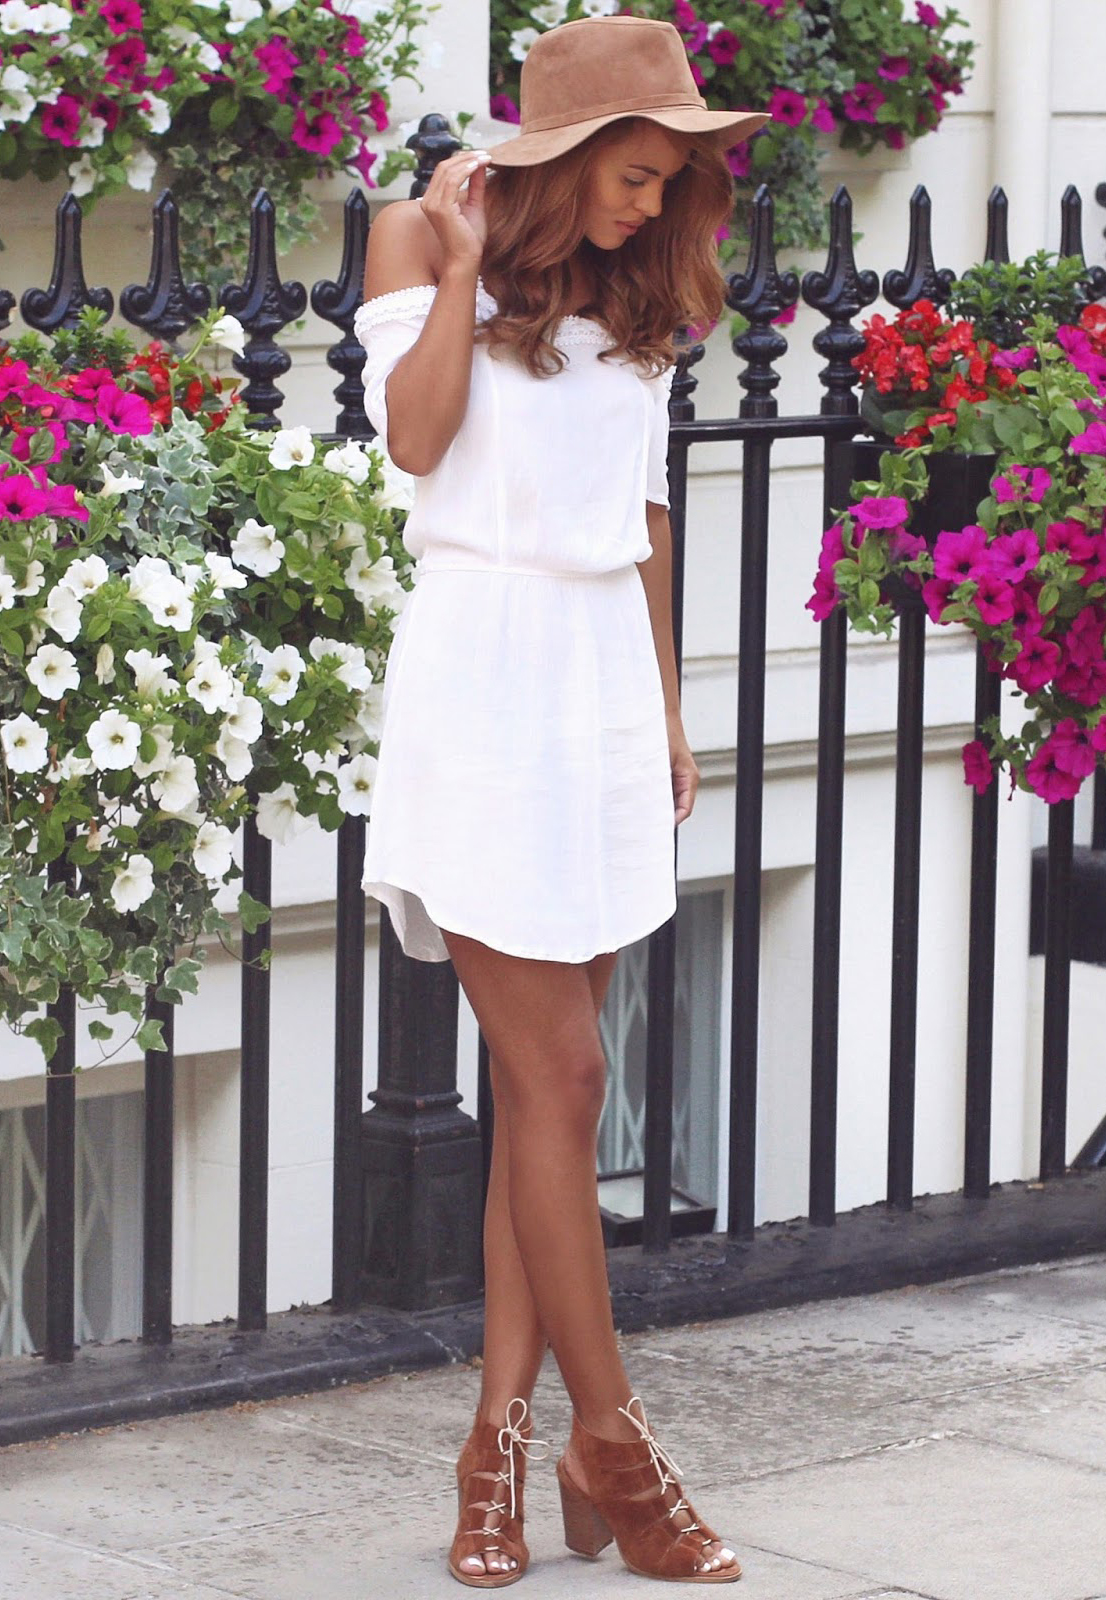 b83493e2e2c4 This cute little white off-the-shoulder boho dress with a fedora and lace